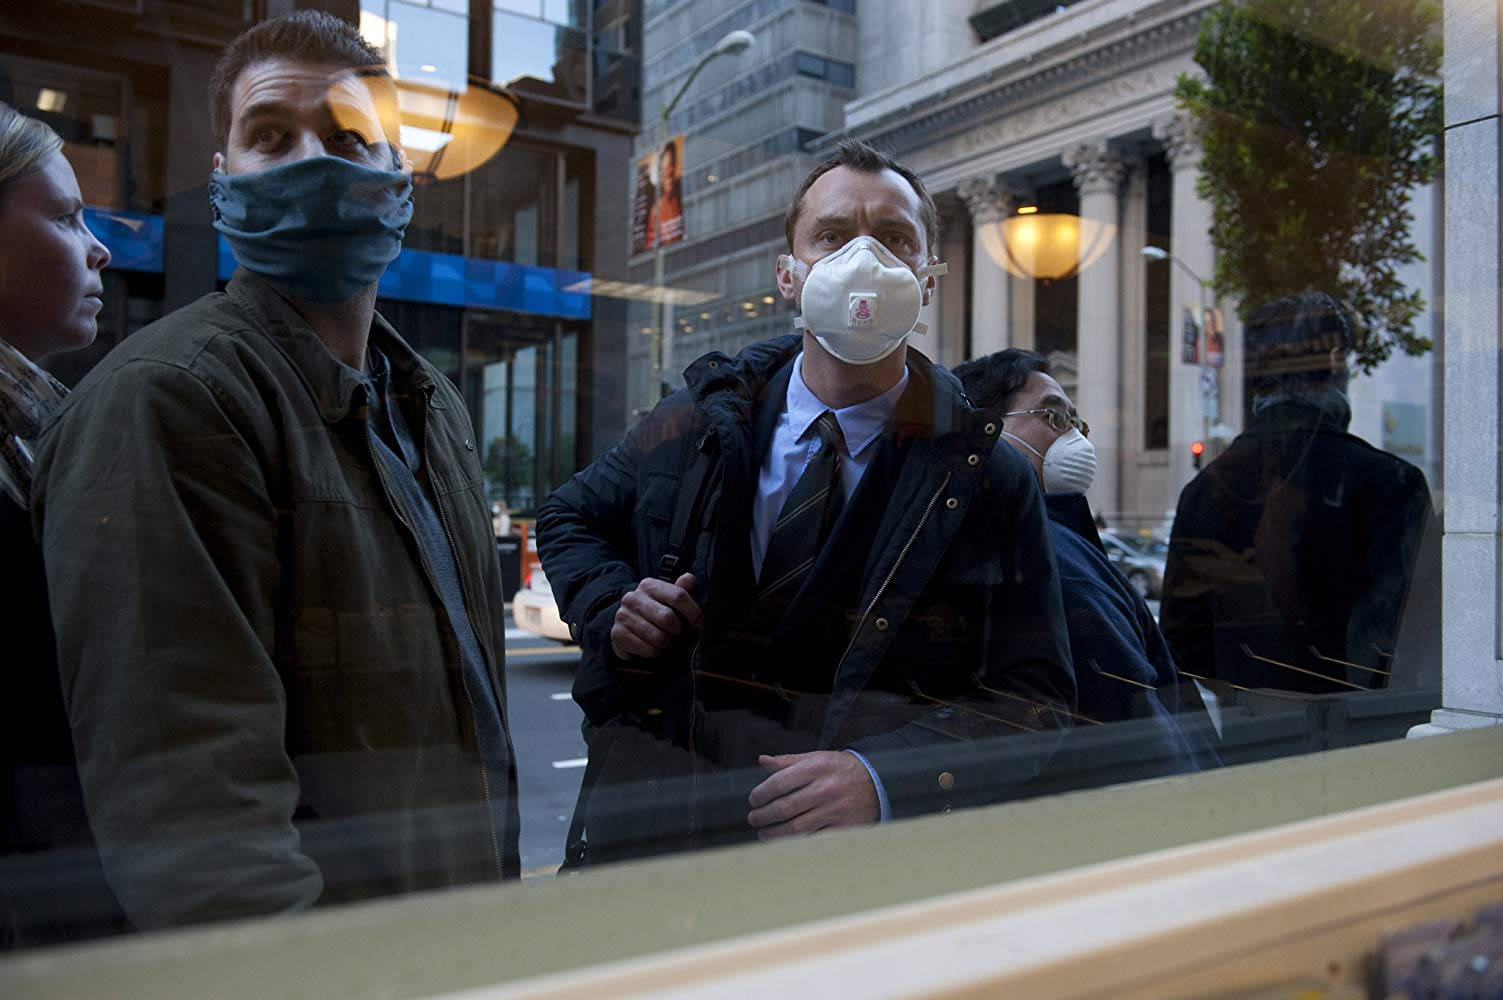 Jude Law at the centre of a plague outbreak in Contagion (2011)